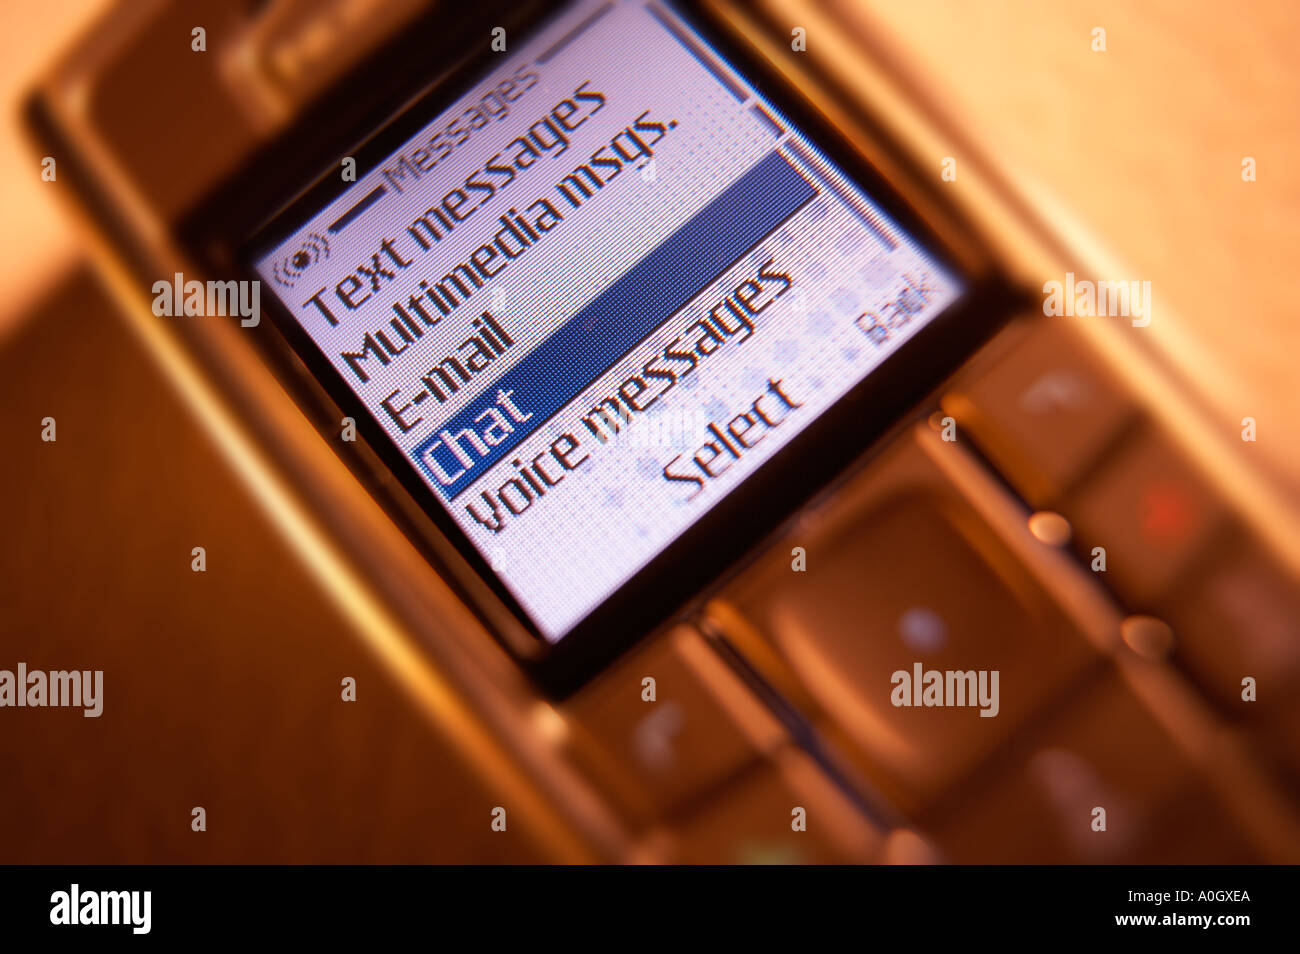 CHAT MENU TEXT ON MOBILE PHONE SCREEN Stock Photo